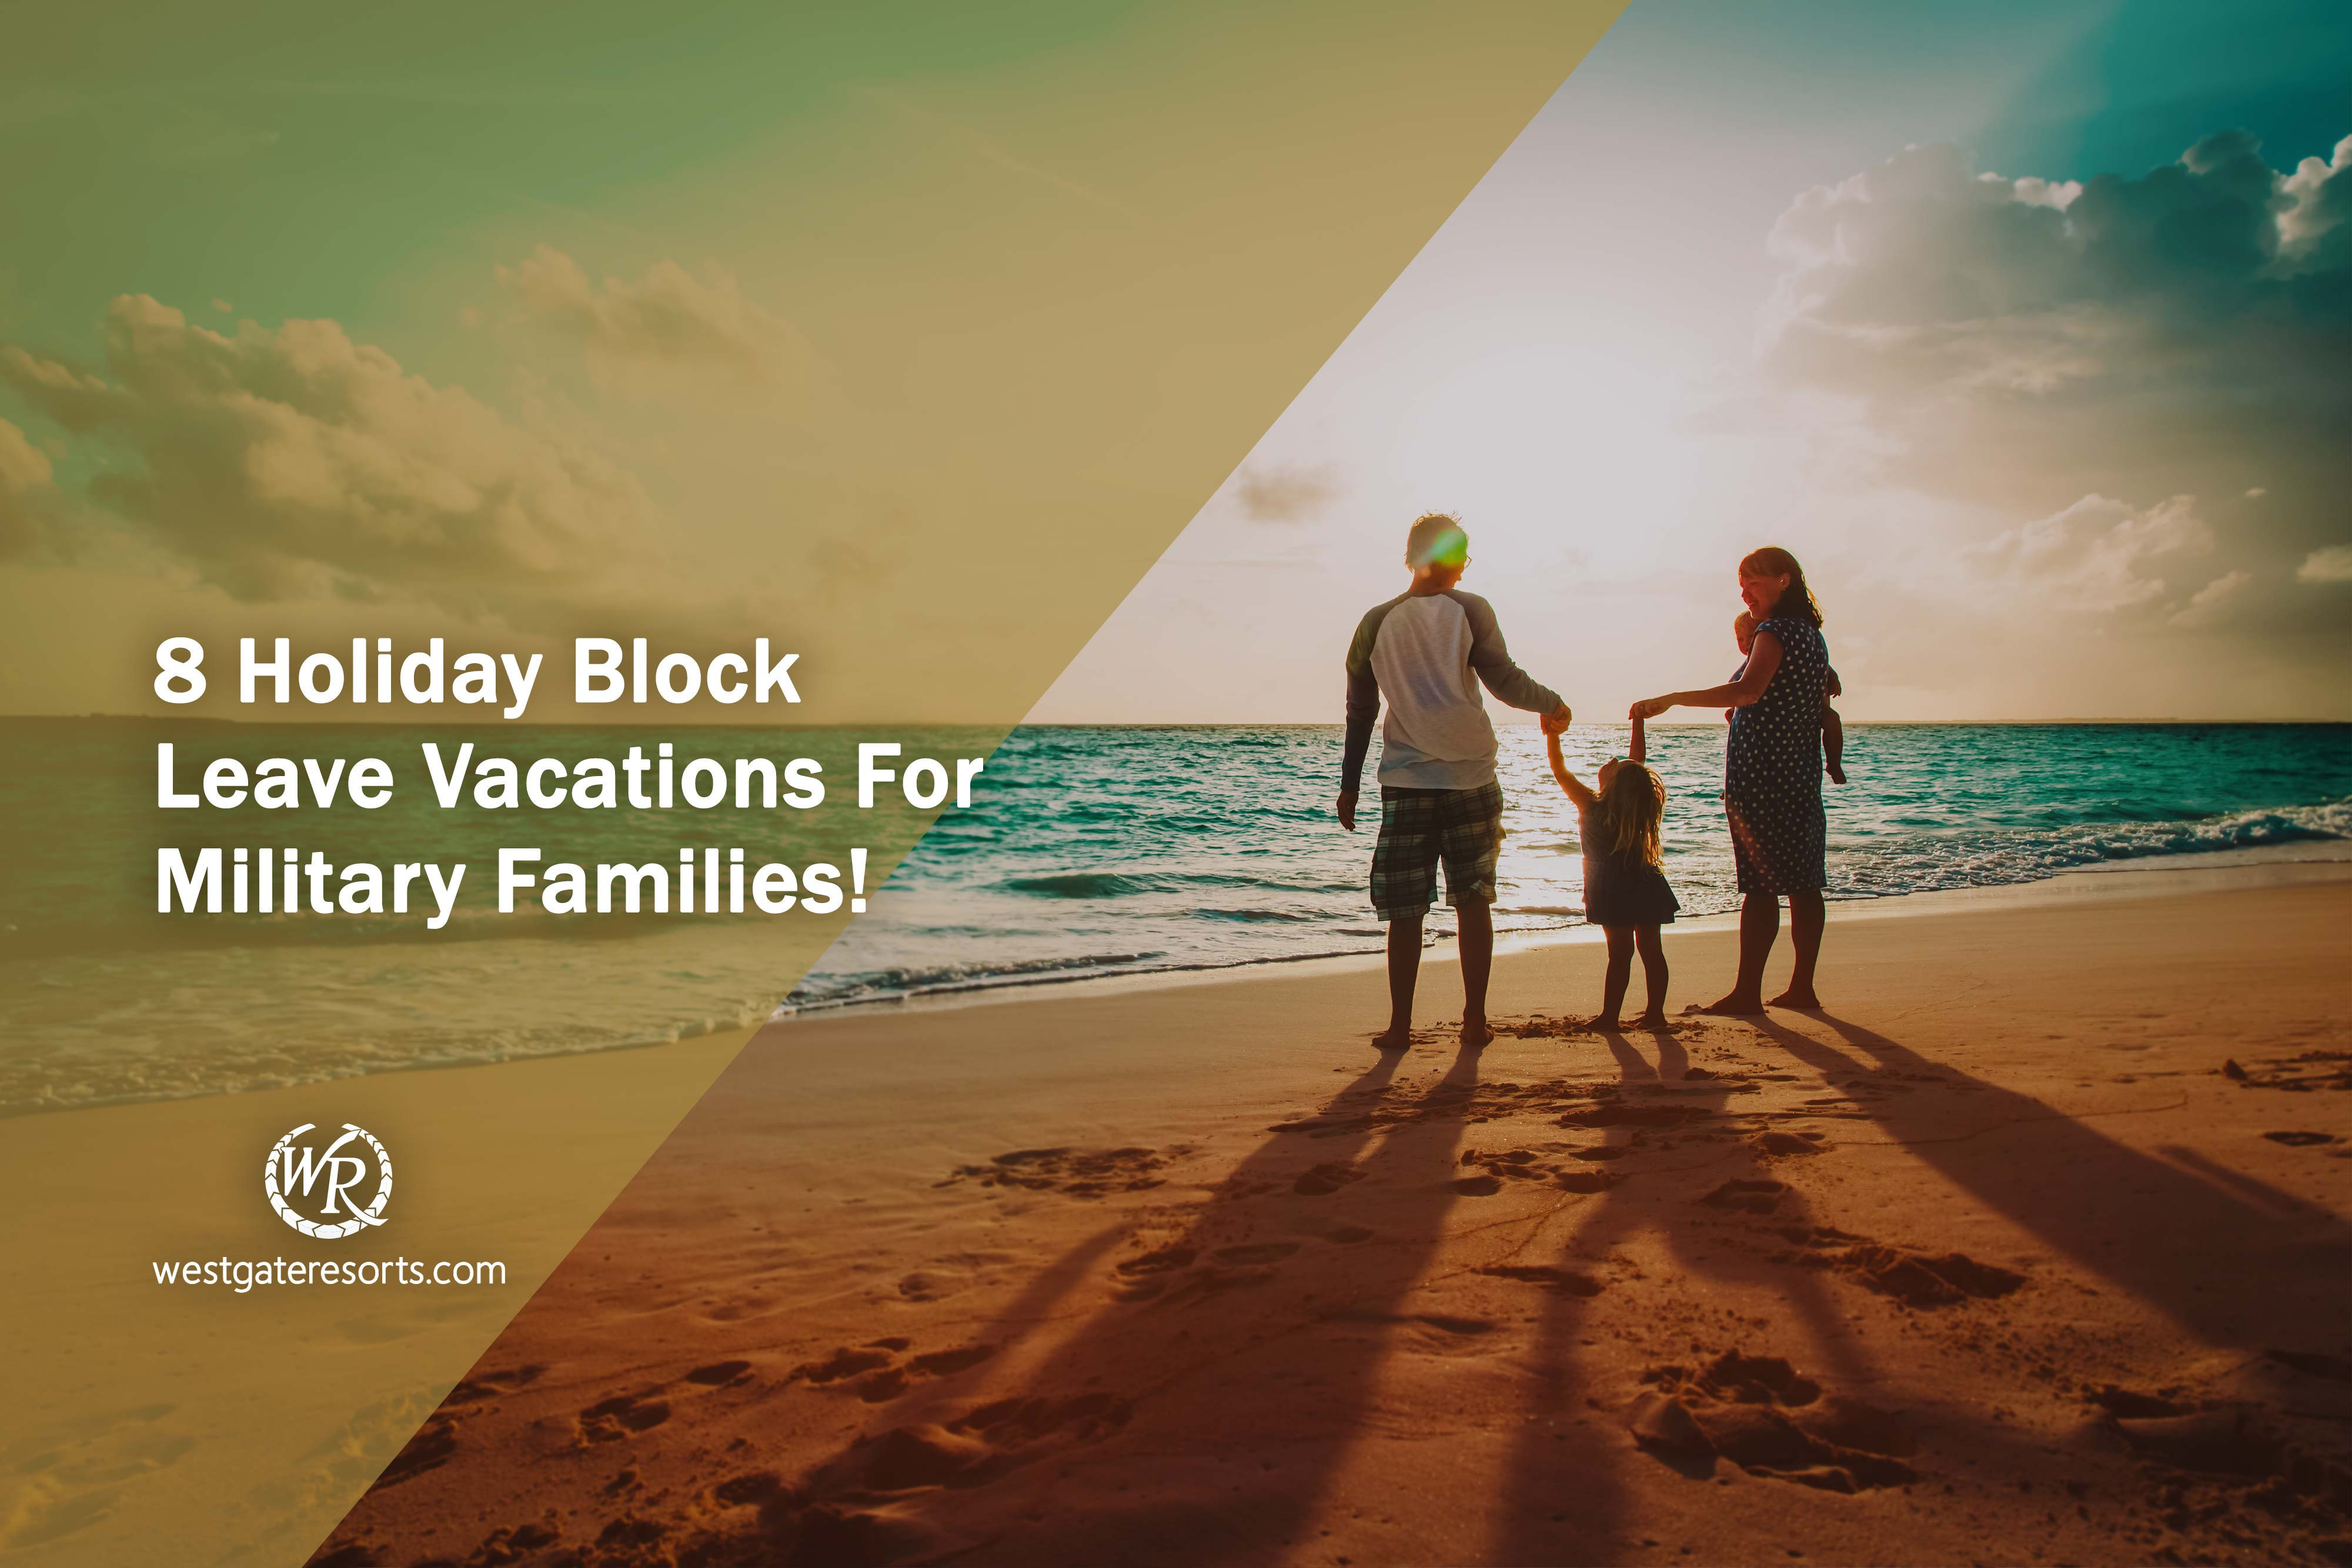 8 Holiday Block Leave Vacations For Military Families!